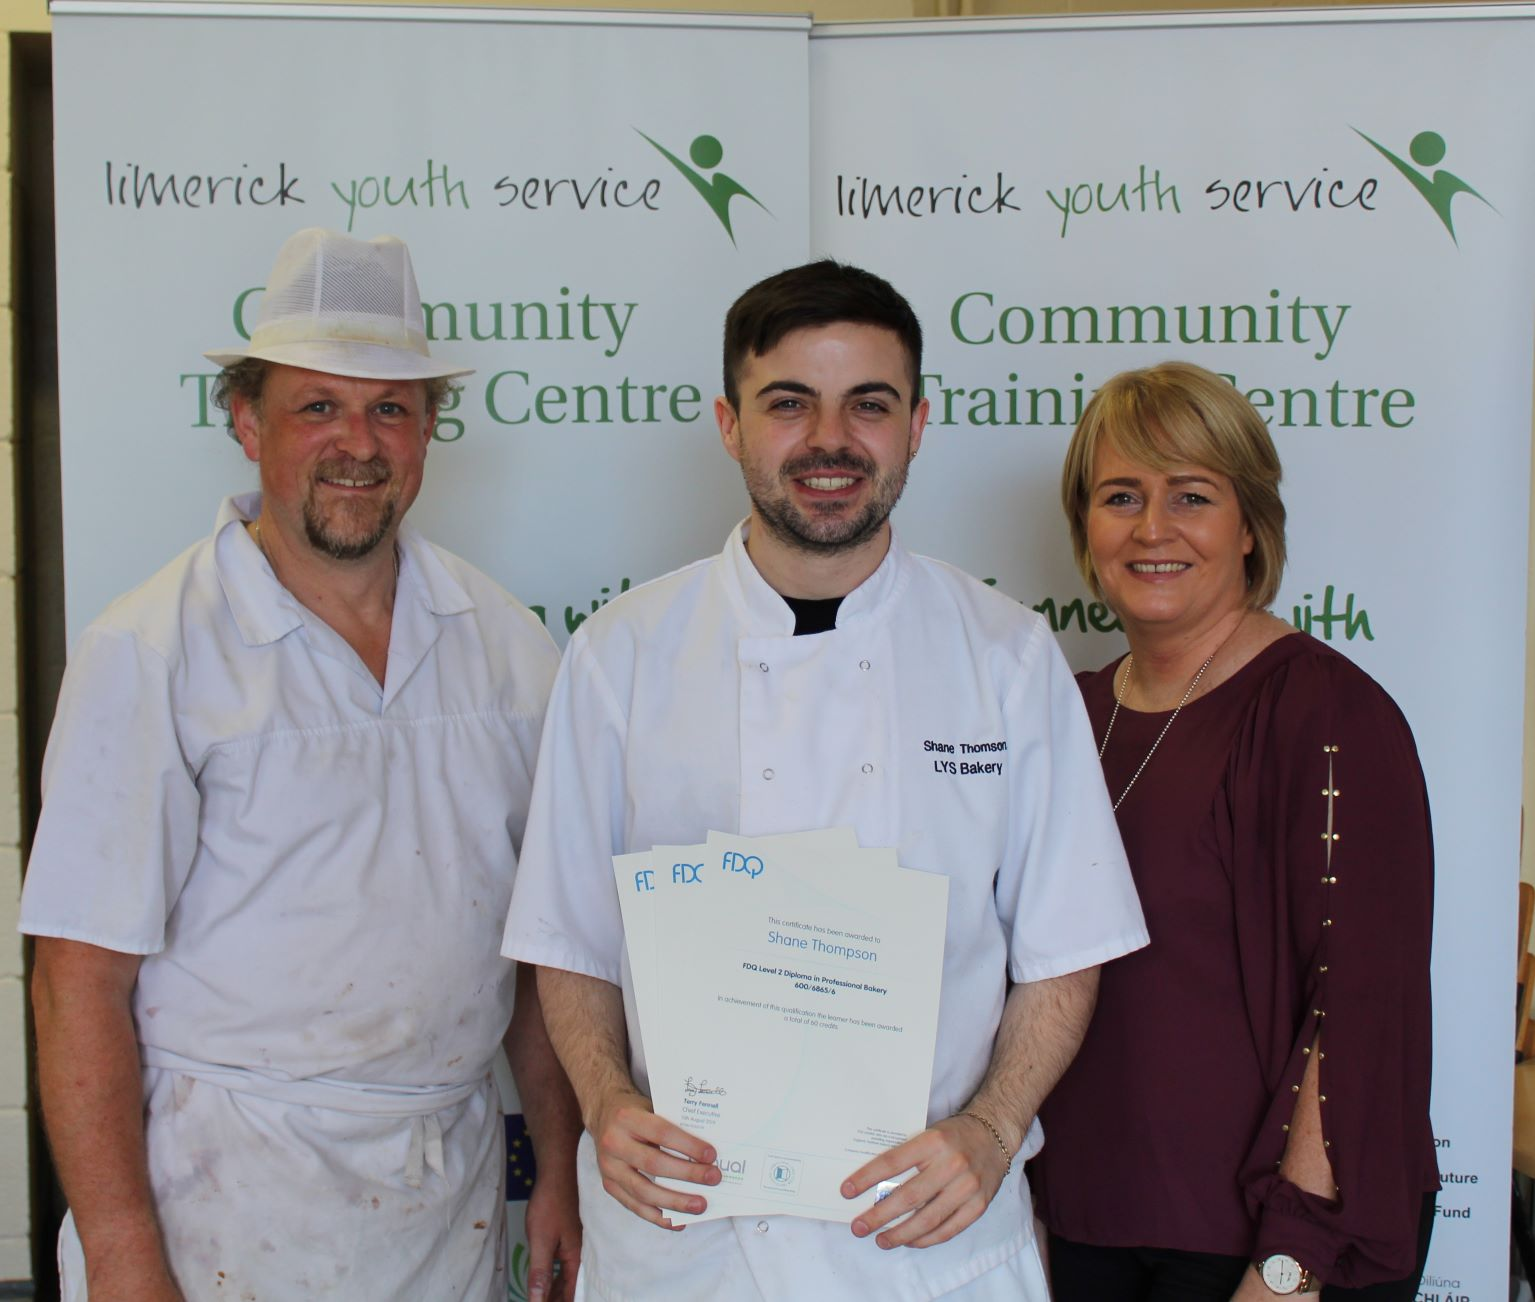 Limerick Youth Service Trainee Bakers